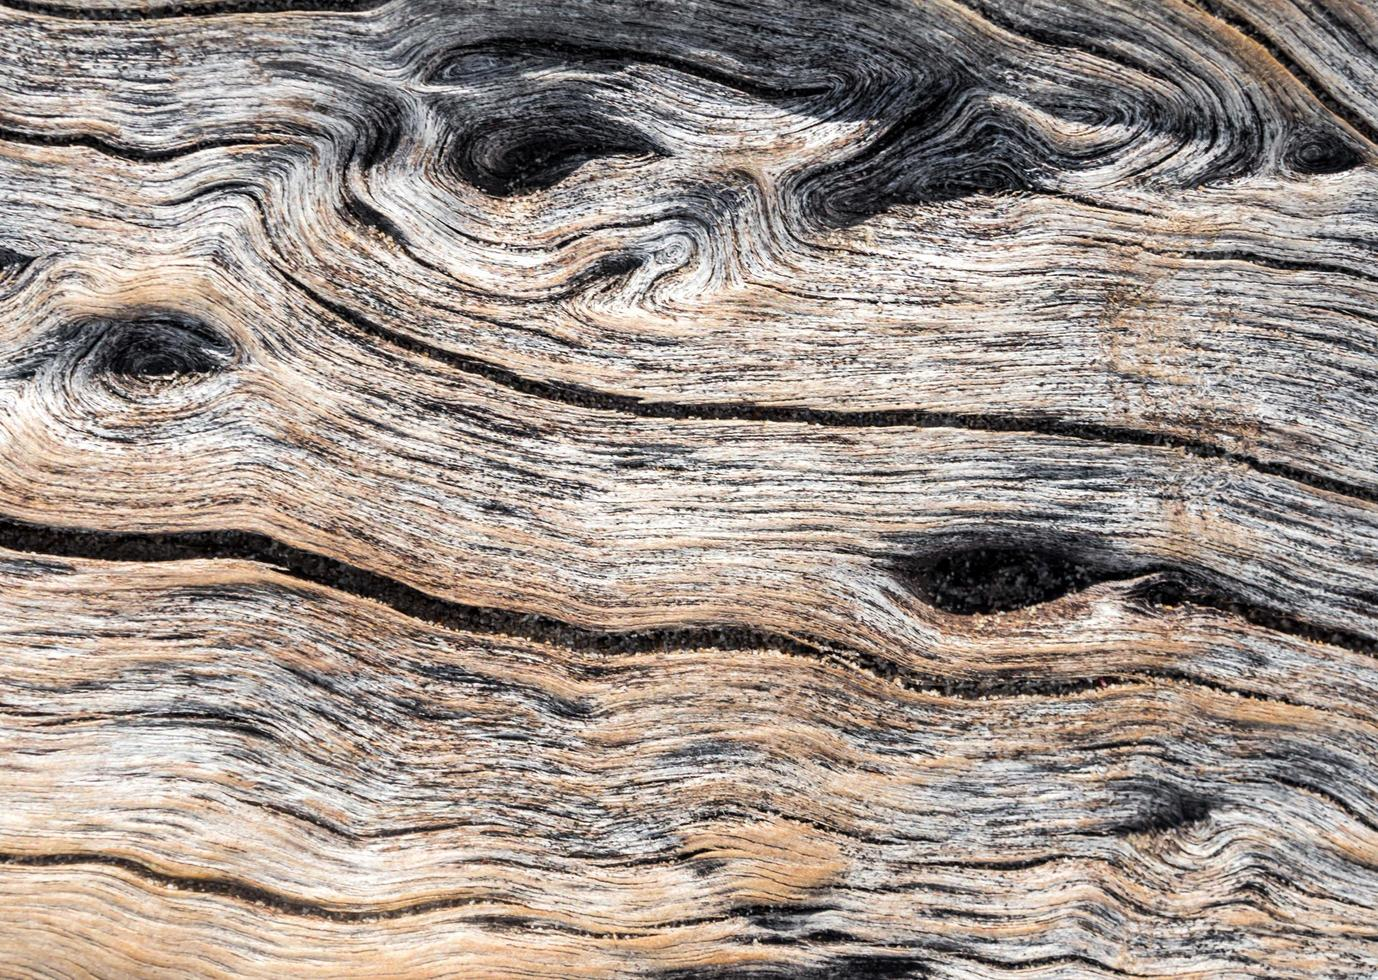 Abstract texture on surface of old wooden board photo